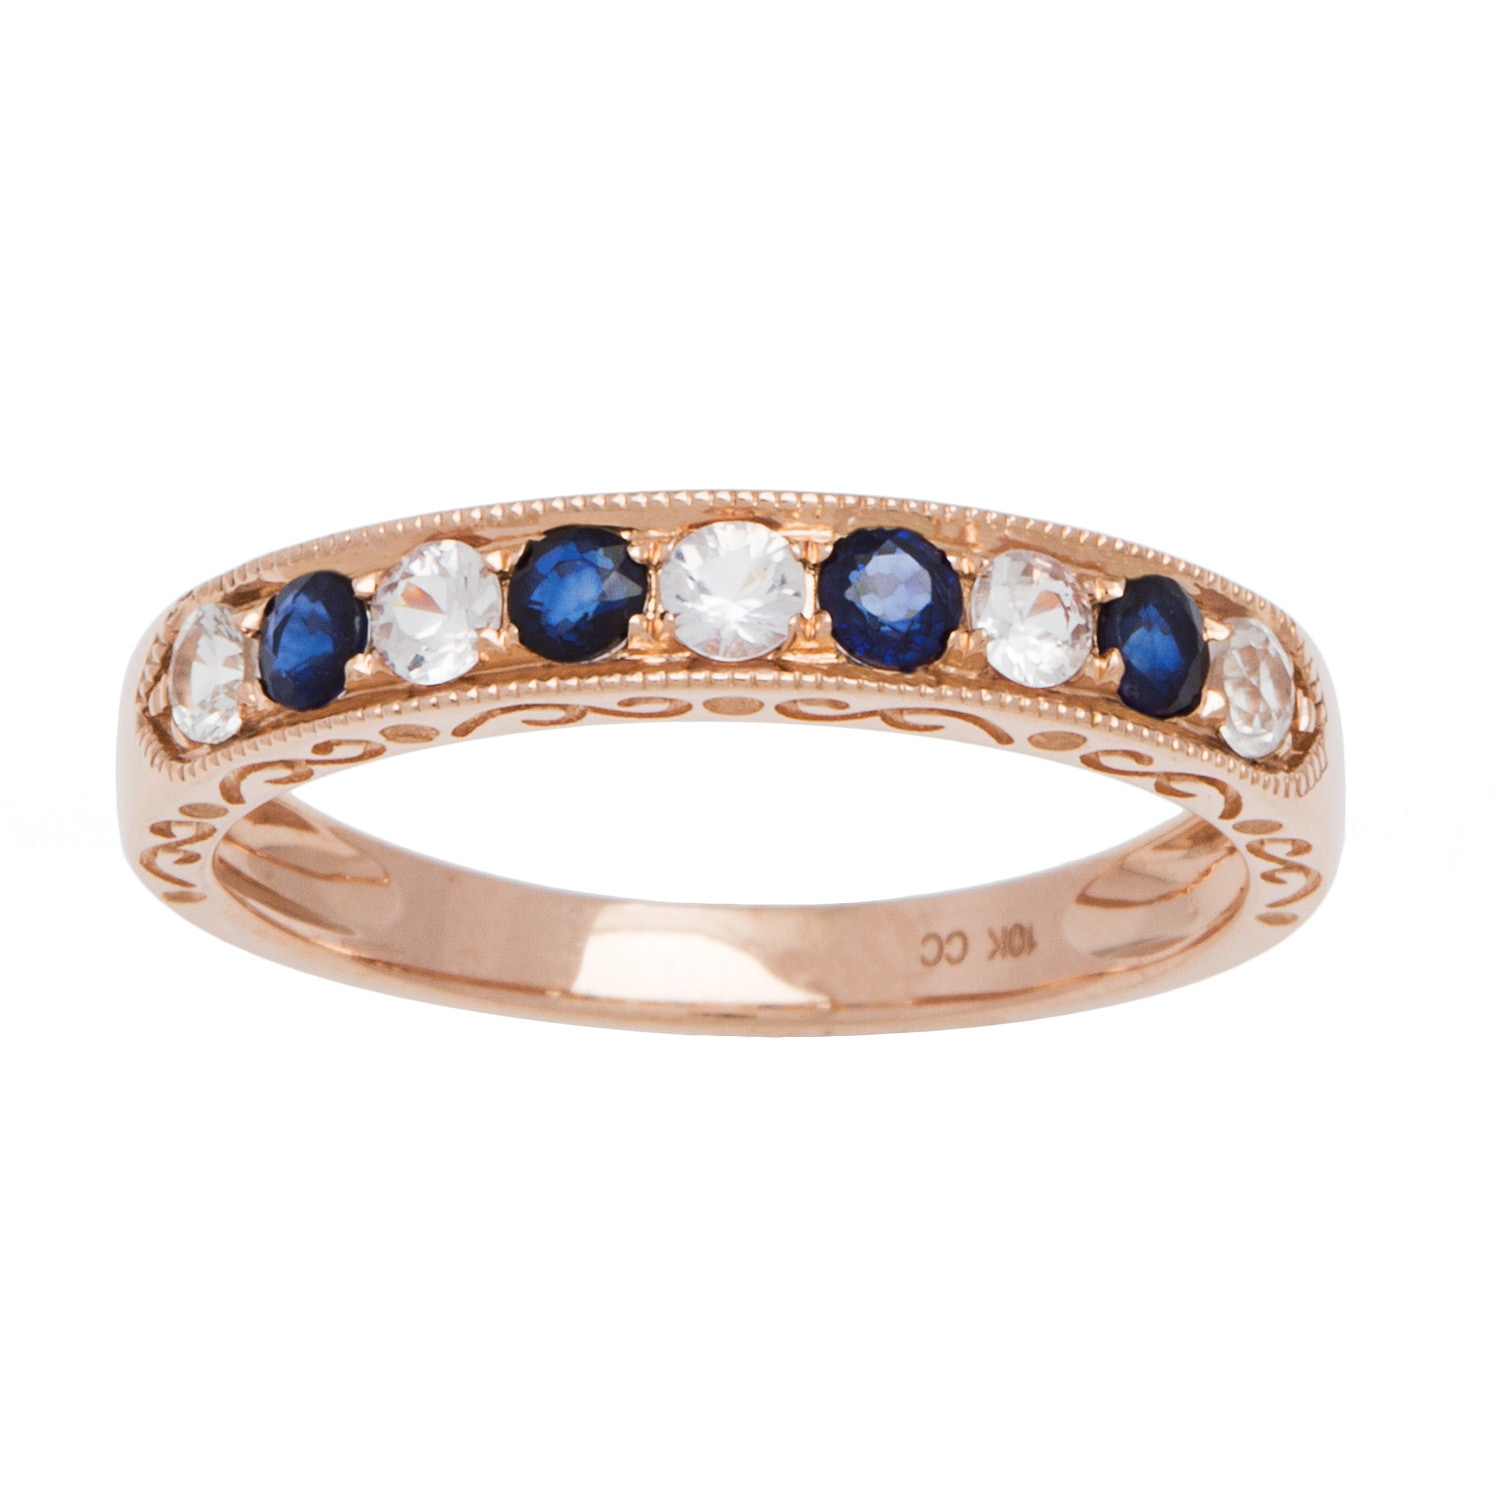 Viducci 10k Gold Vintage Style Sapphire Wedding Band Free Shipping